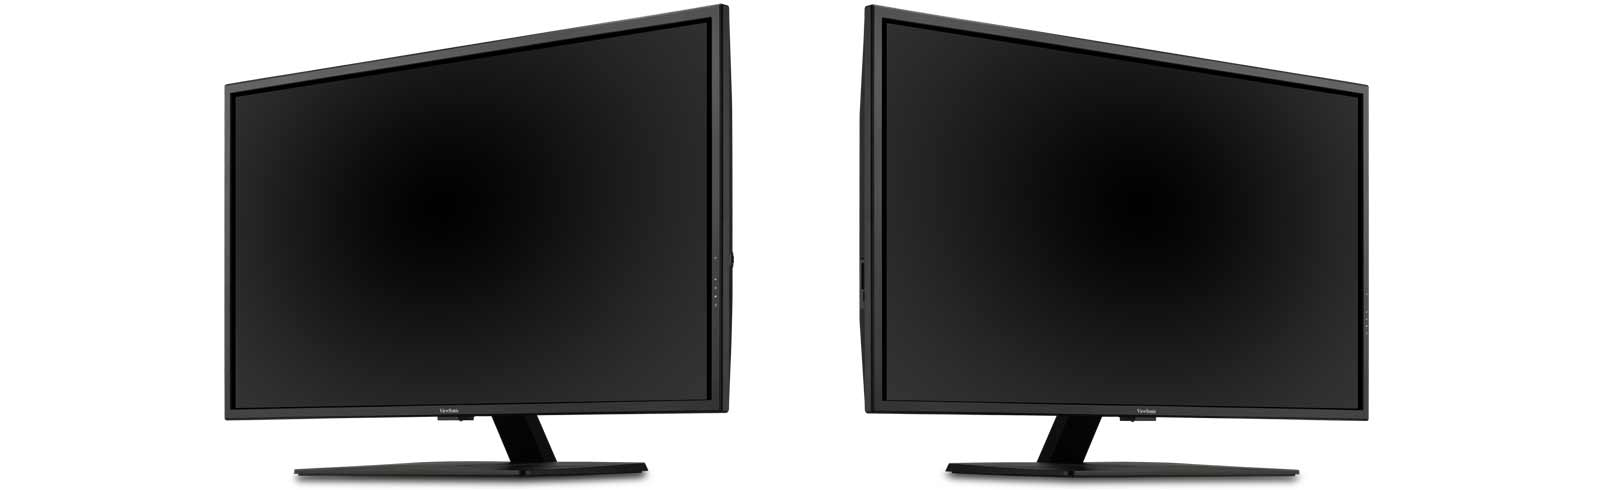 """The ViewSonic VX4381-4K with a 42.5"""" 4K MVA display is launched for USD 794"""